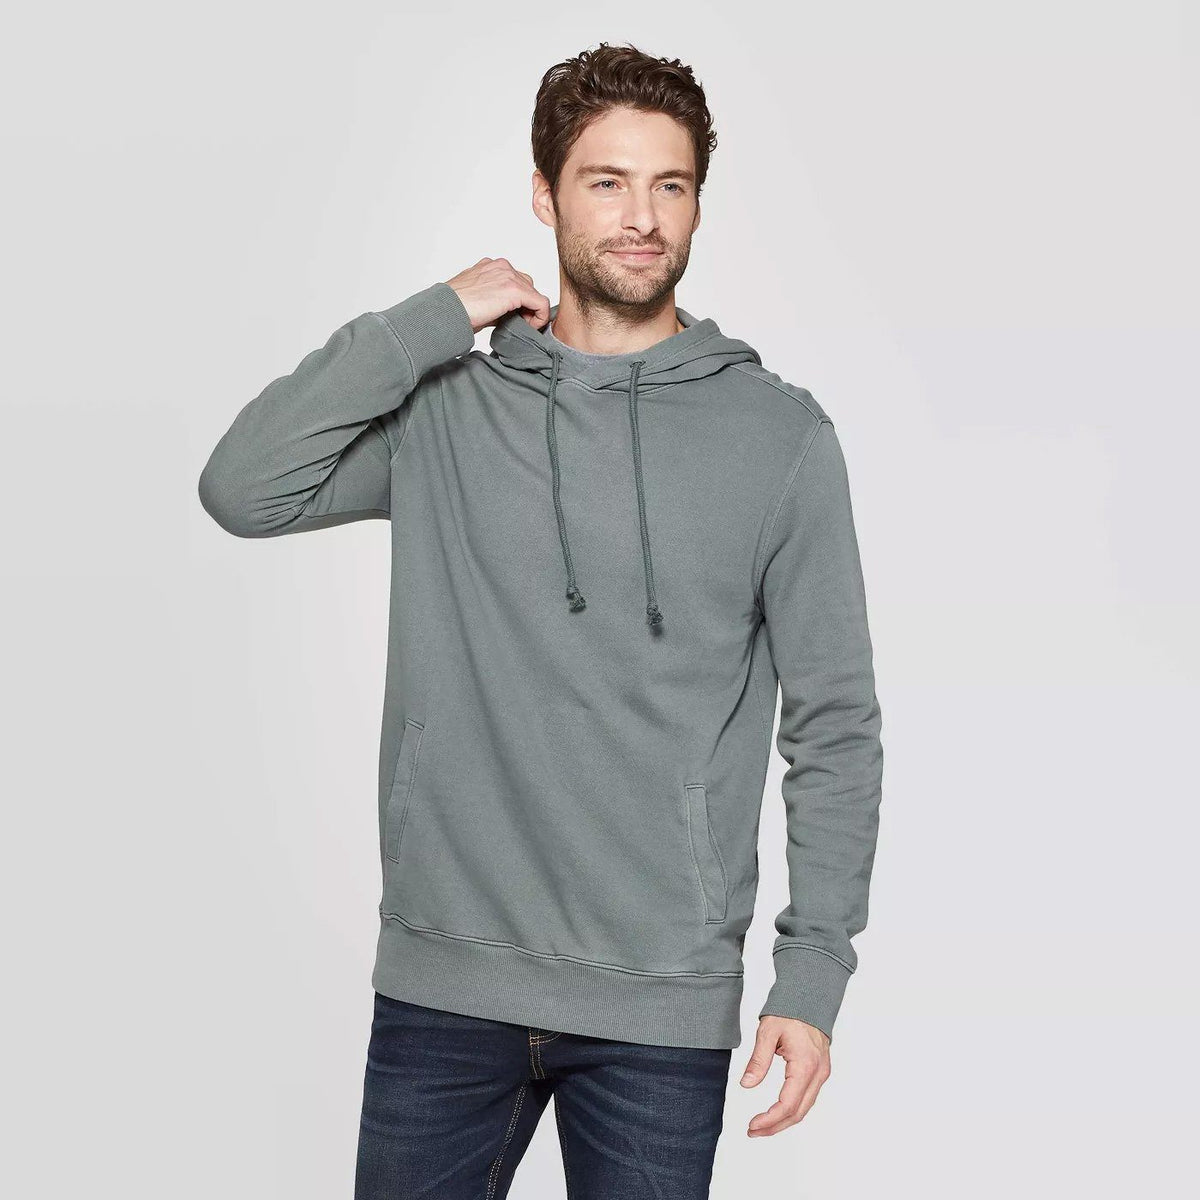 CR Men's 10-16A20 Terry Pullover Hoodie Men's Pullover Hoodie SRK Graphite XS